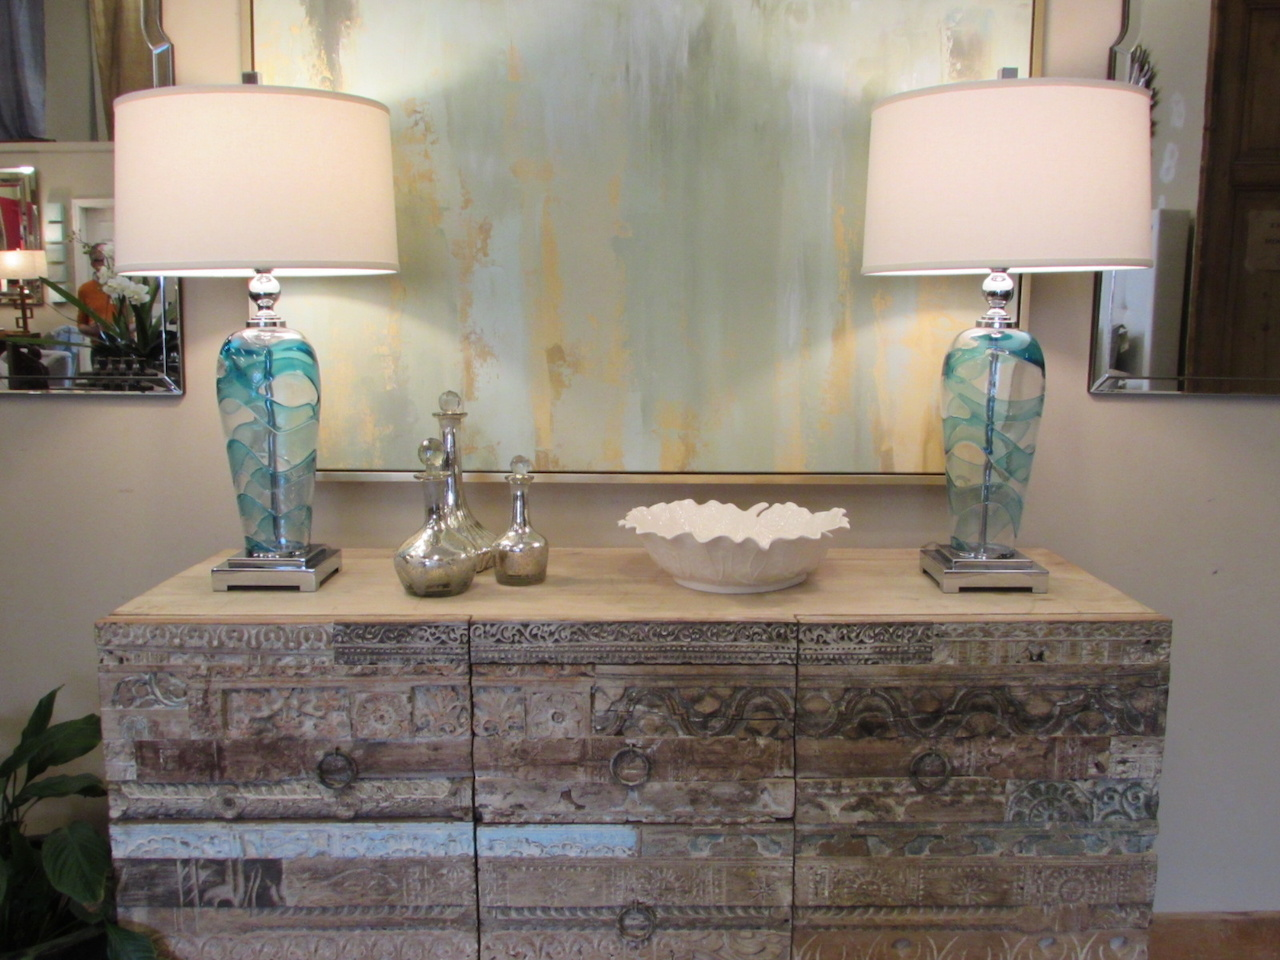 Carved chest of drawers $1,375; decorative glass decanters, $45-$75; abstract painting, $1,145; Andreas glass table lamps, $339 each; white stoneware leaf bowl, $69 – all found at Merridian Home Furnishings